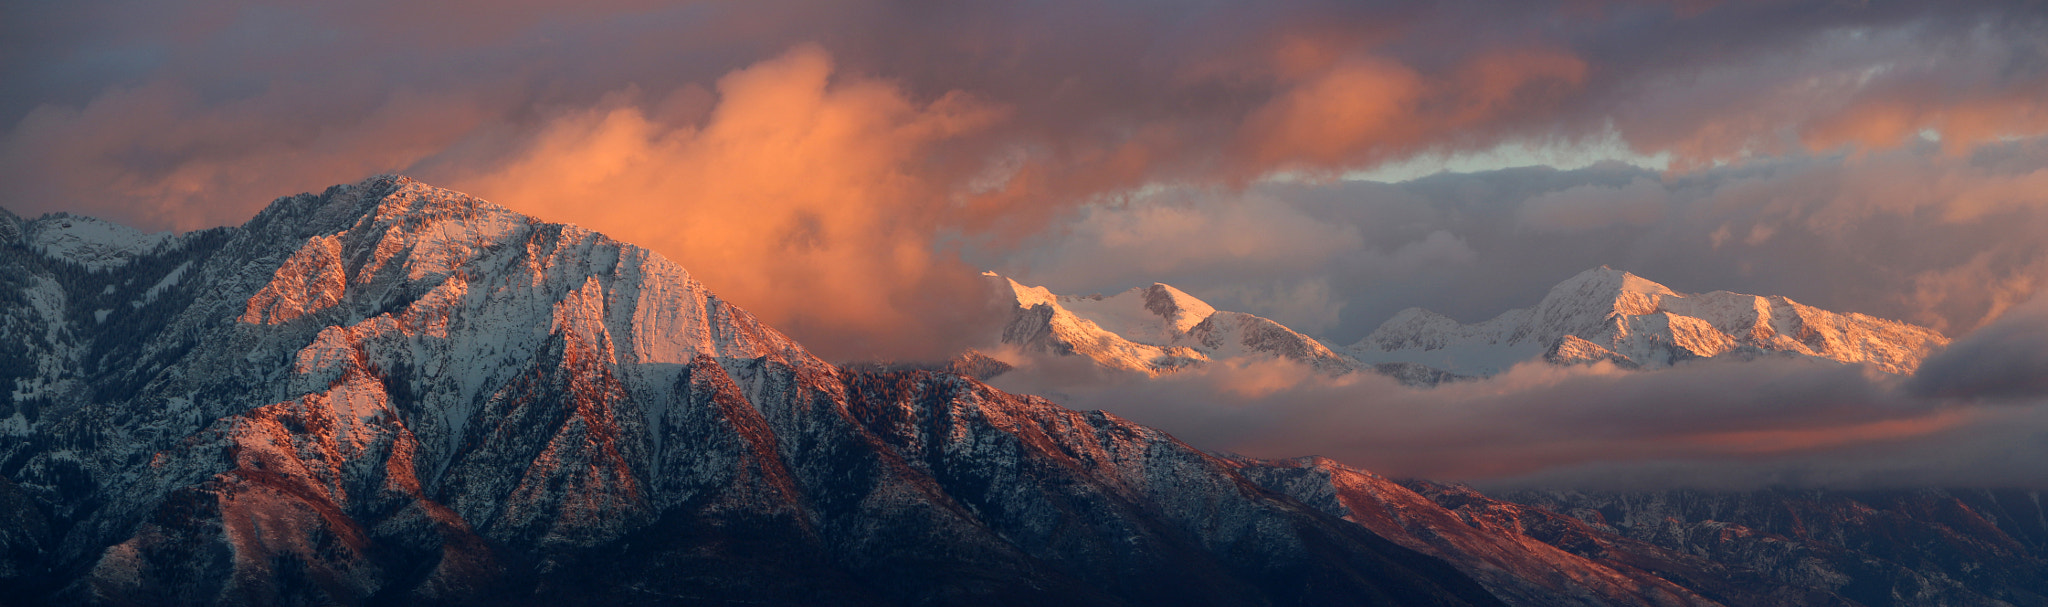 Photograph Mount Olympus Light Show by Christian Madsen on 500px